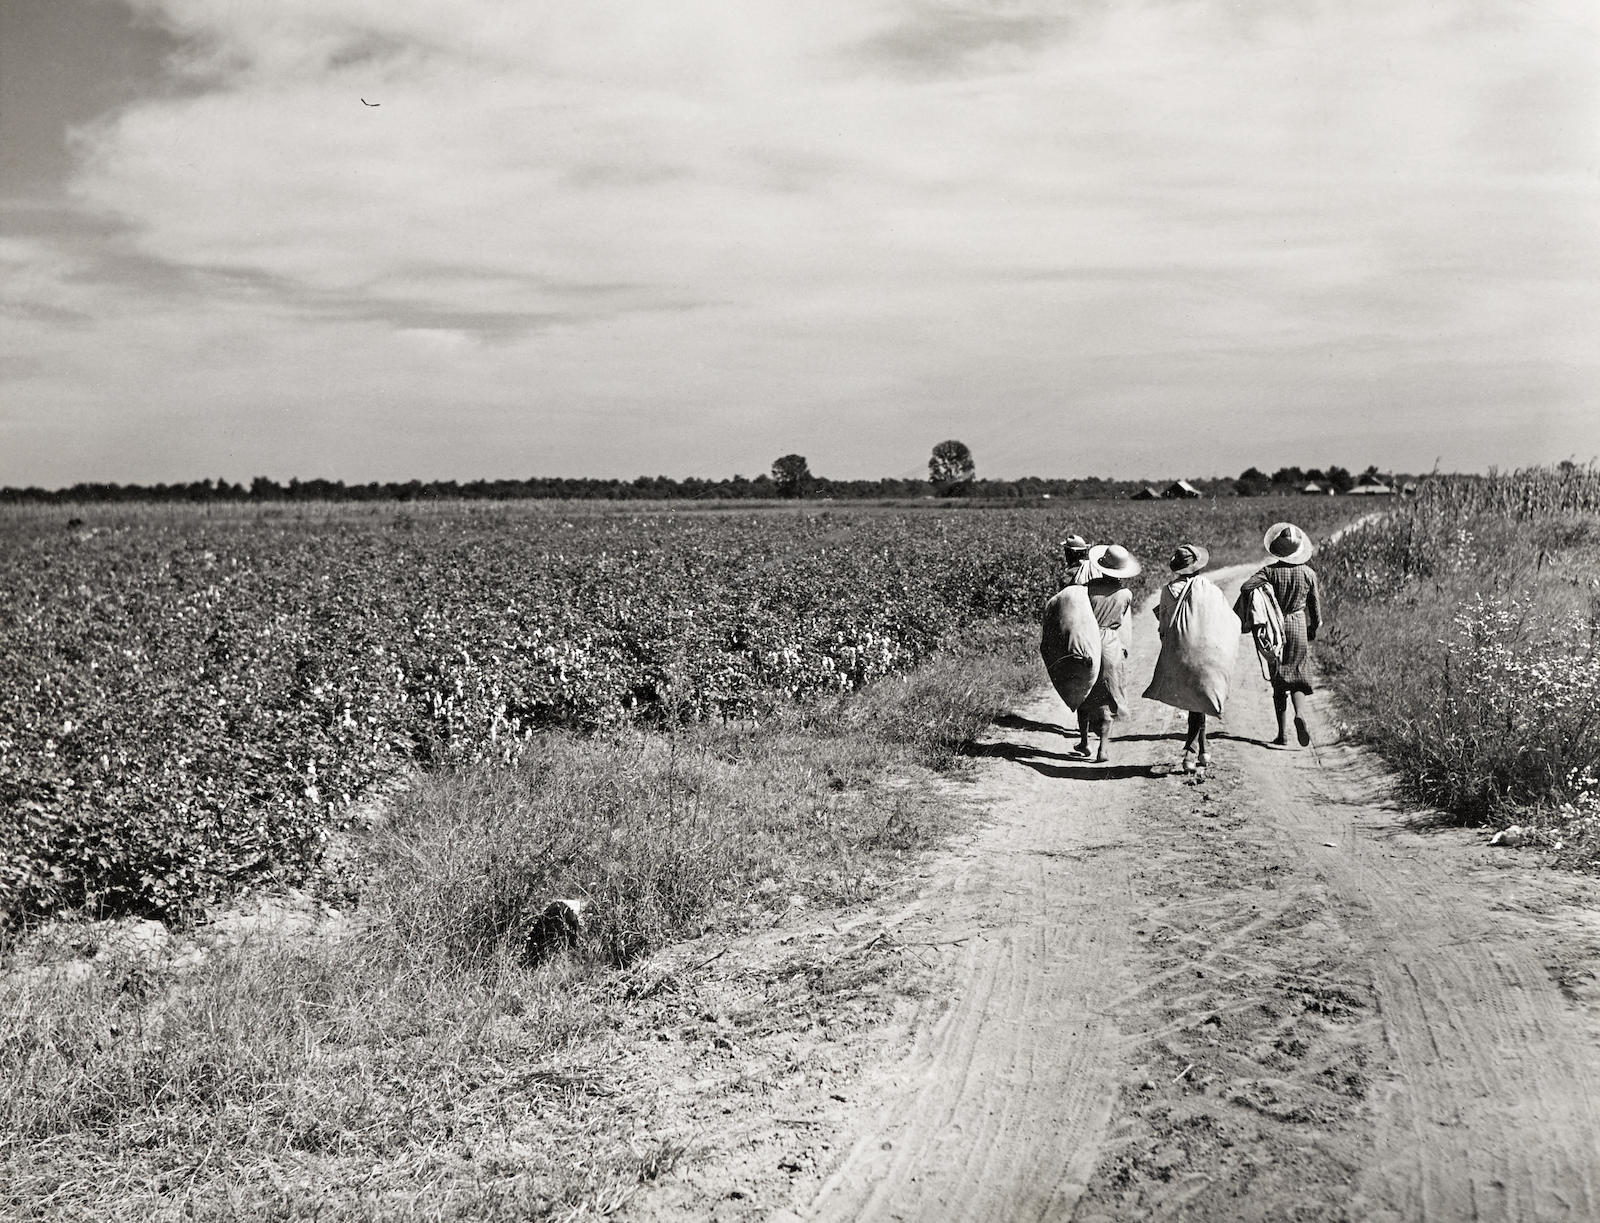 Marion Post Wolcott-Untitled (Three Girls Carrying Cotton Sacks, Possibly Mileston Plantation)-1940